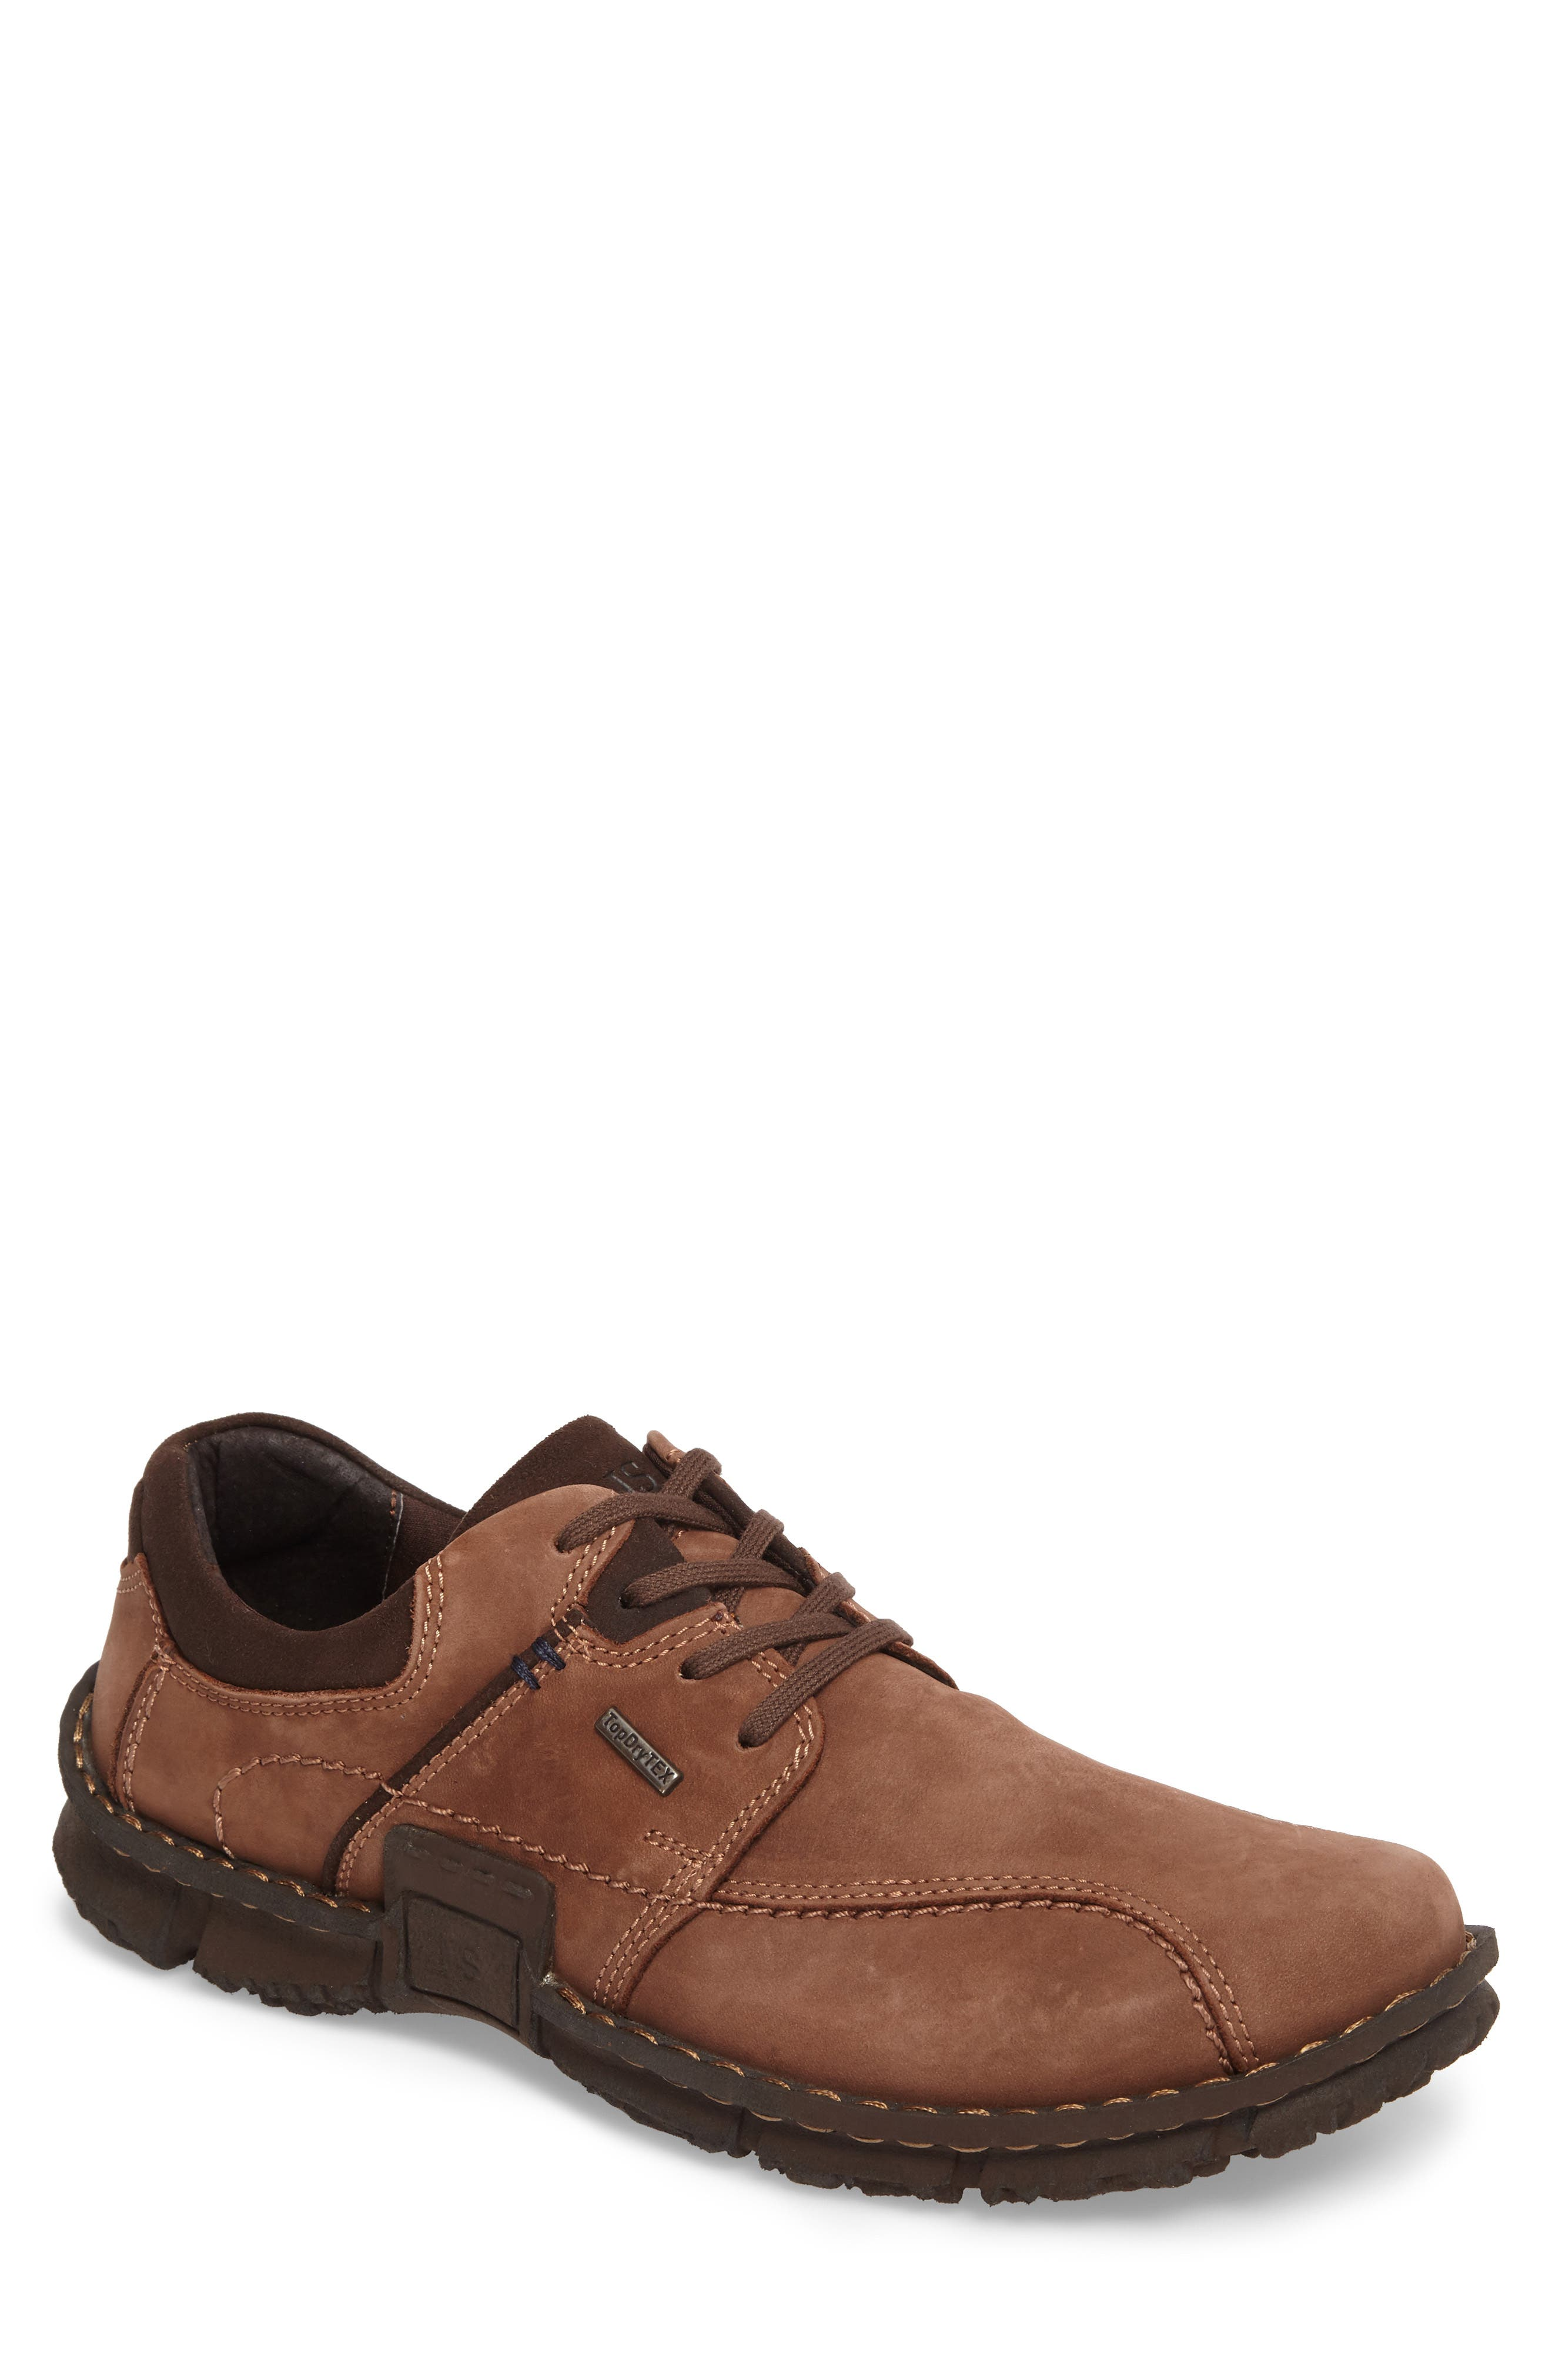 Josef Seibel Willow Waterproof Sneaker (Men)